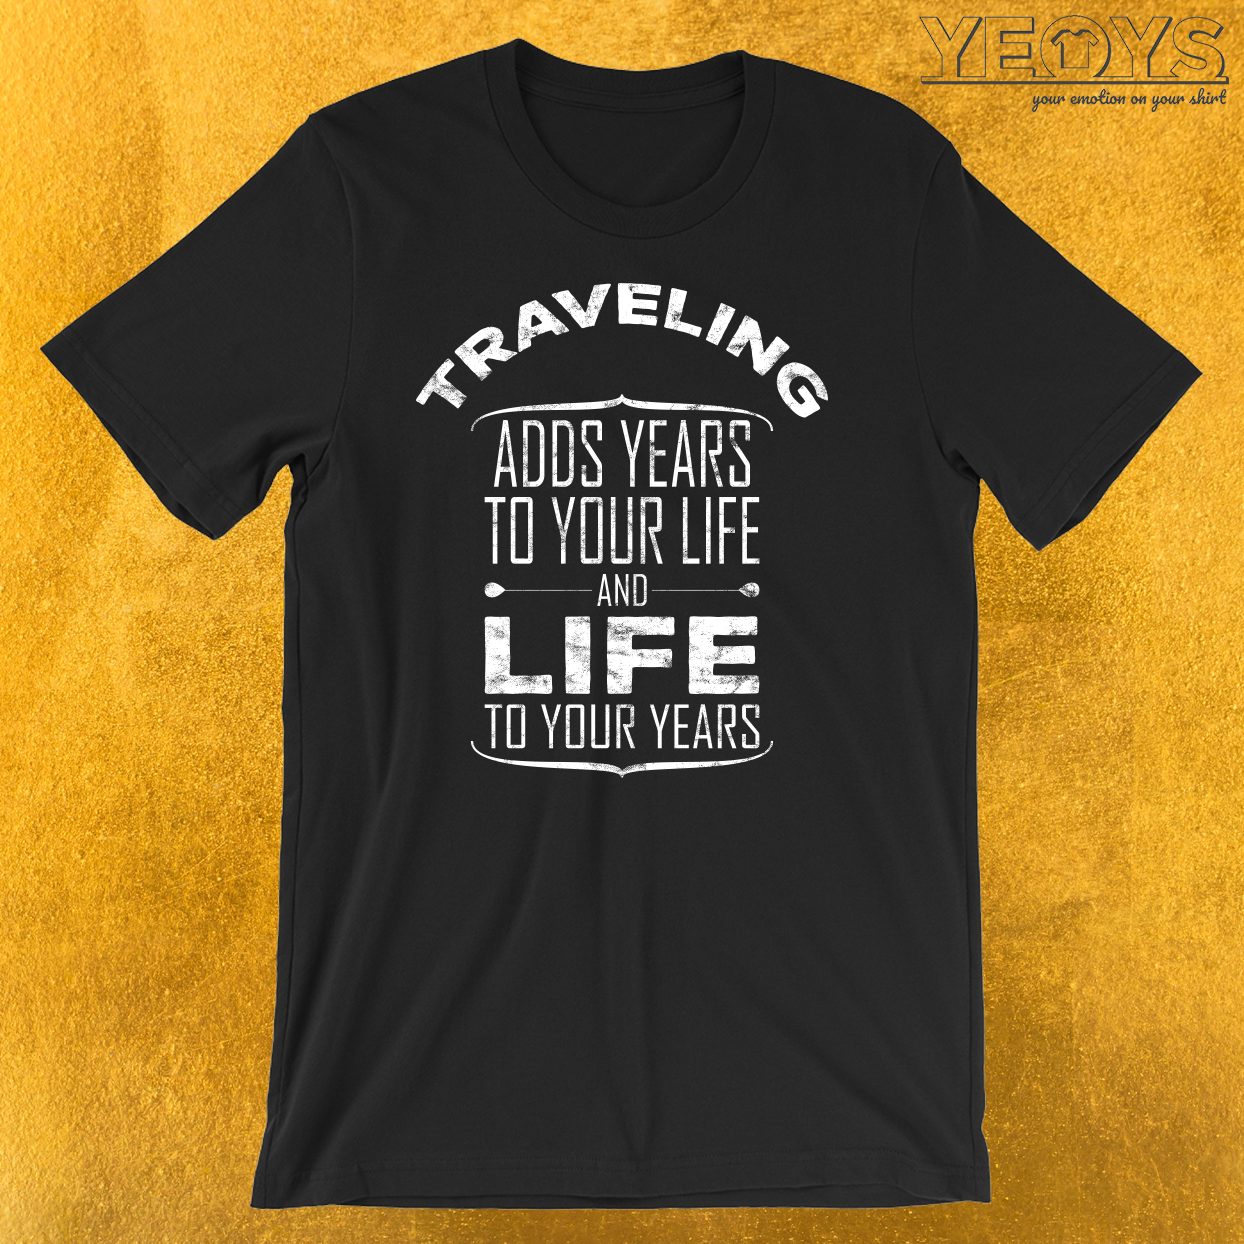 Traveling Adds Life To Your Years T-Shirt